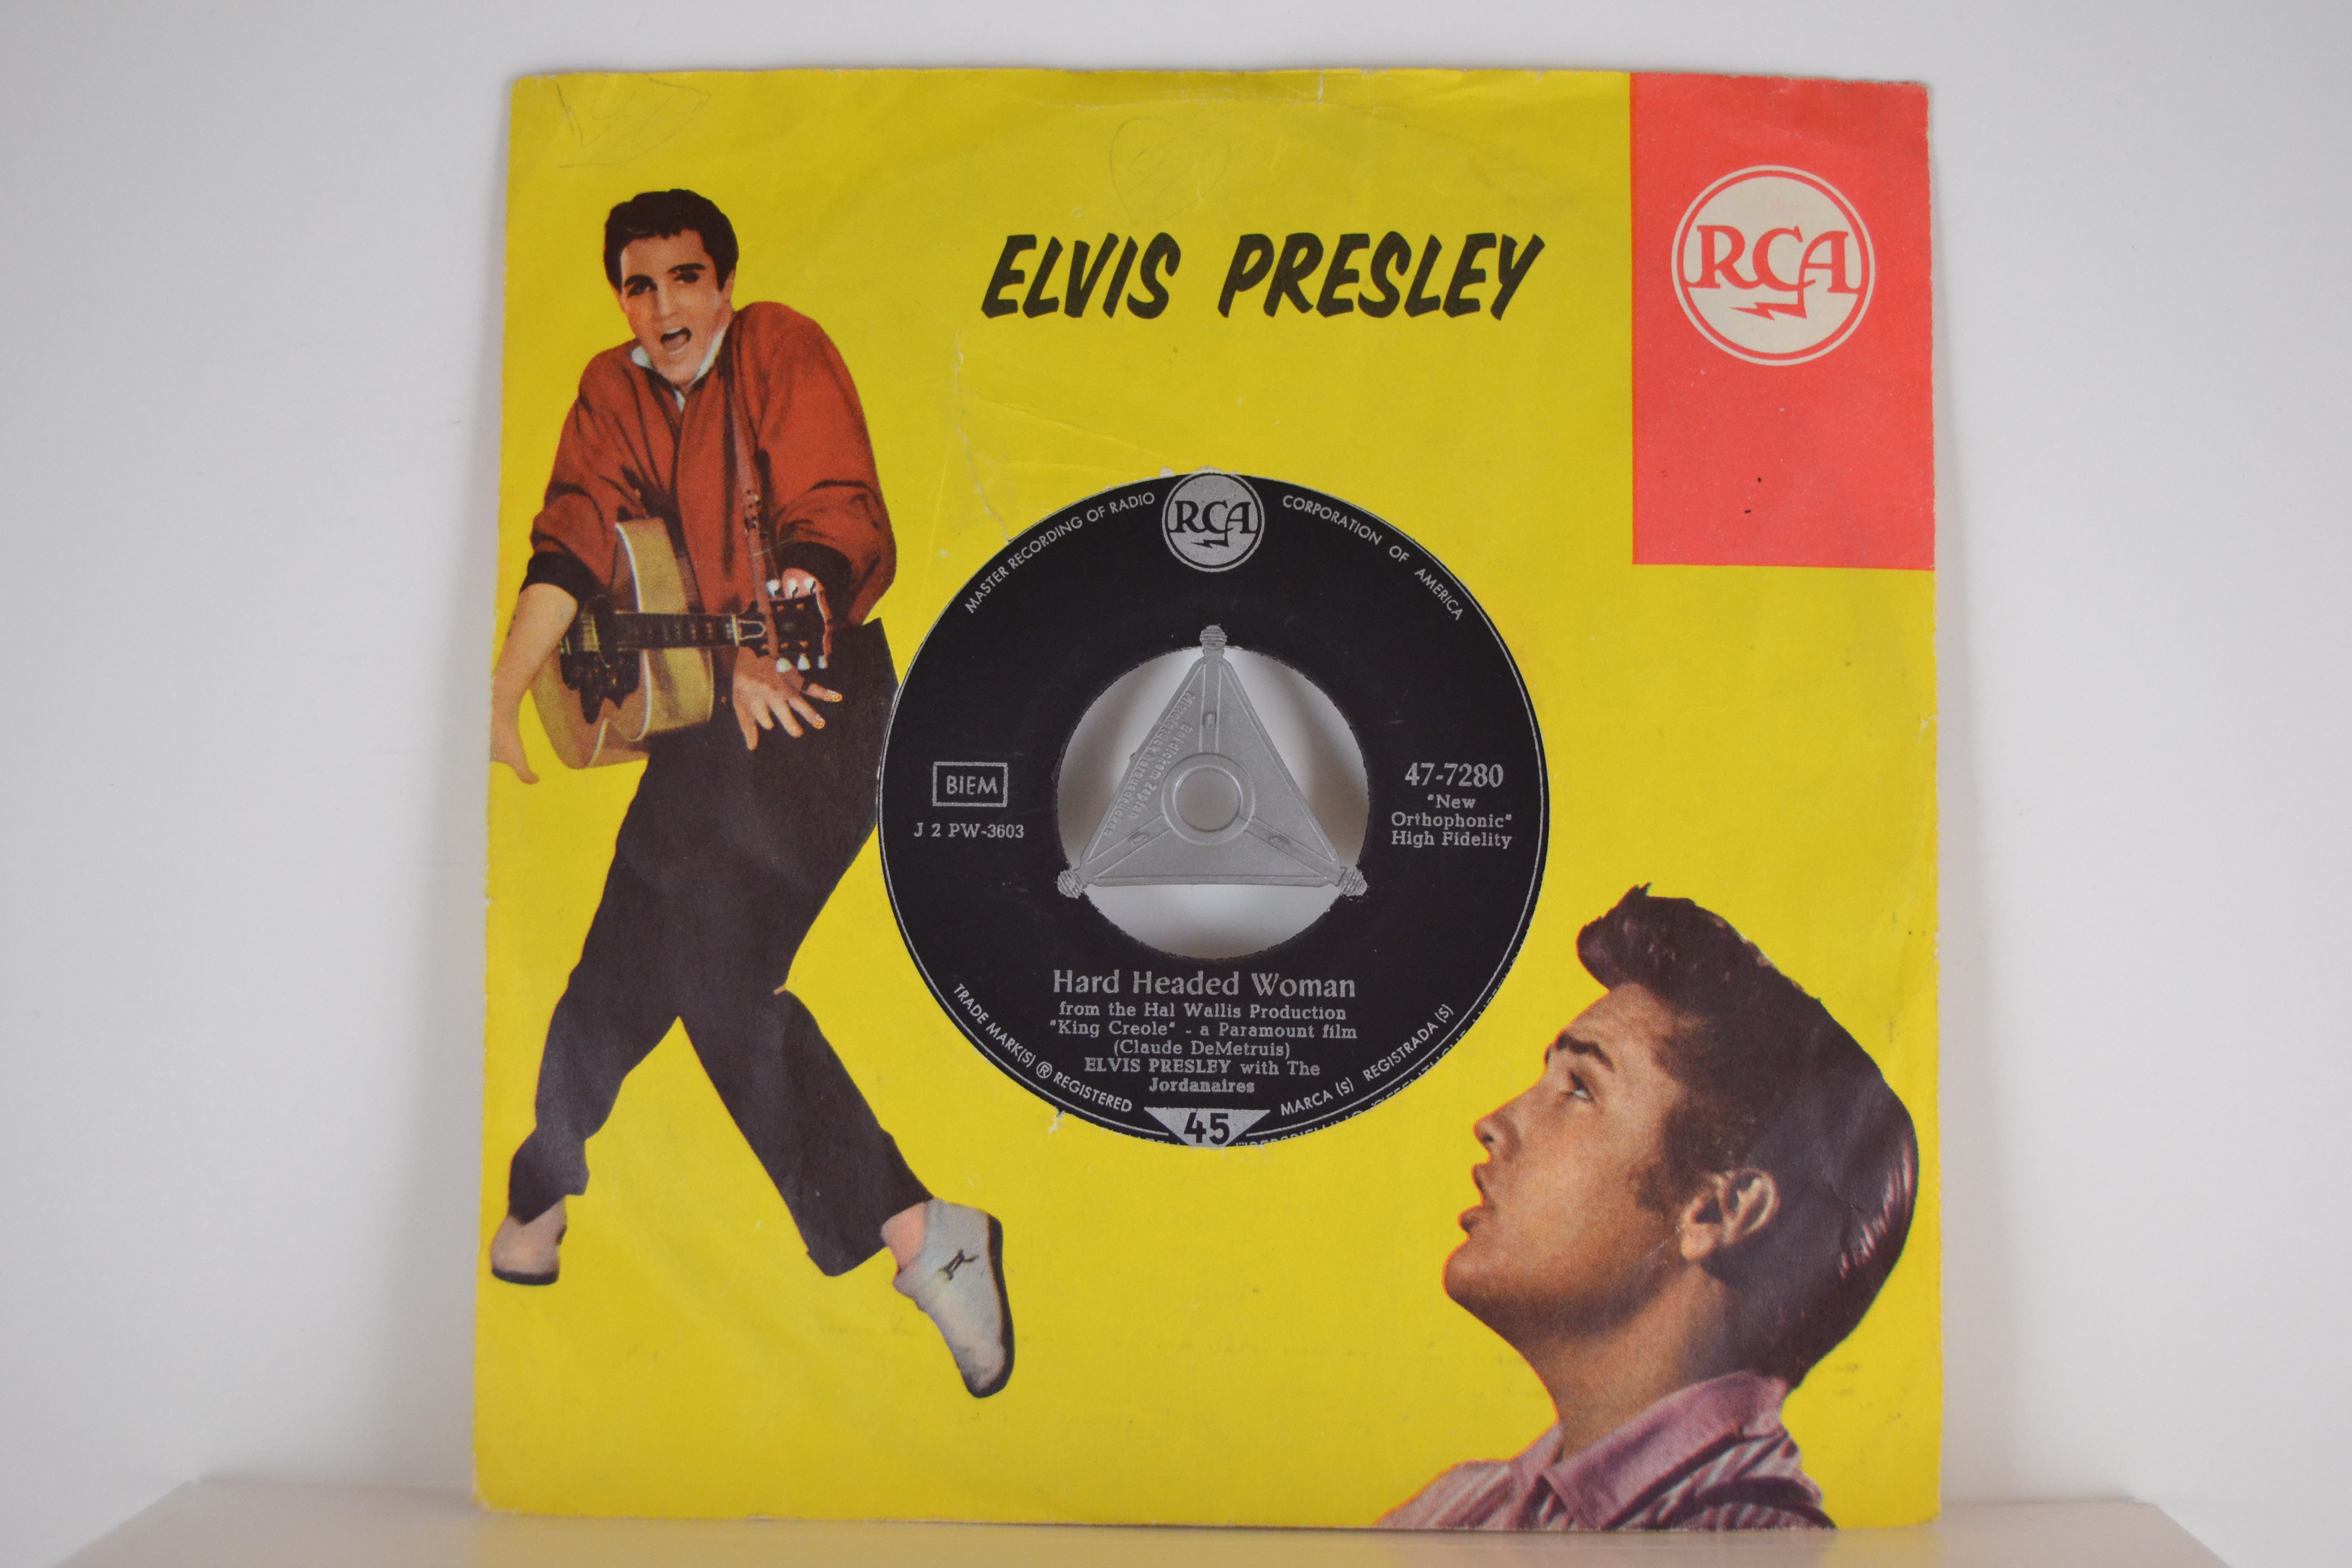 ELVIS PRESLEY : Hard headed woman / Don't ask me why